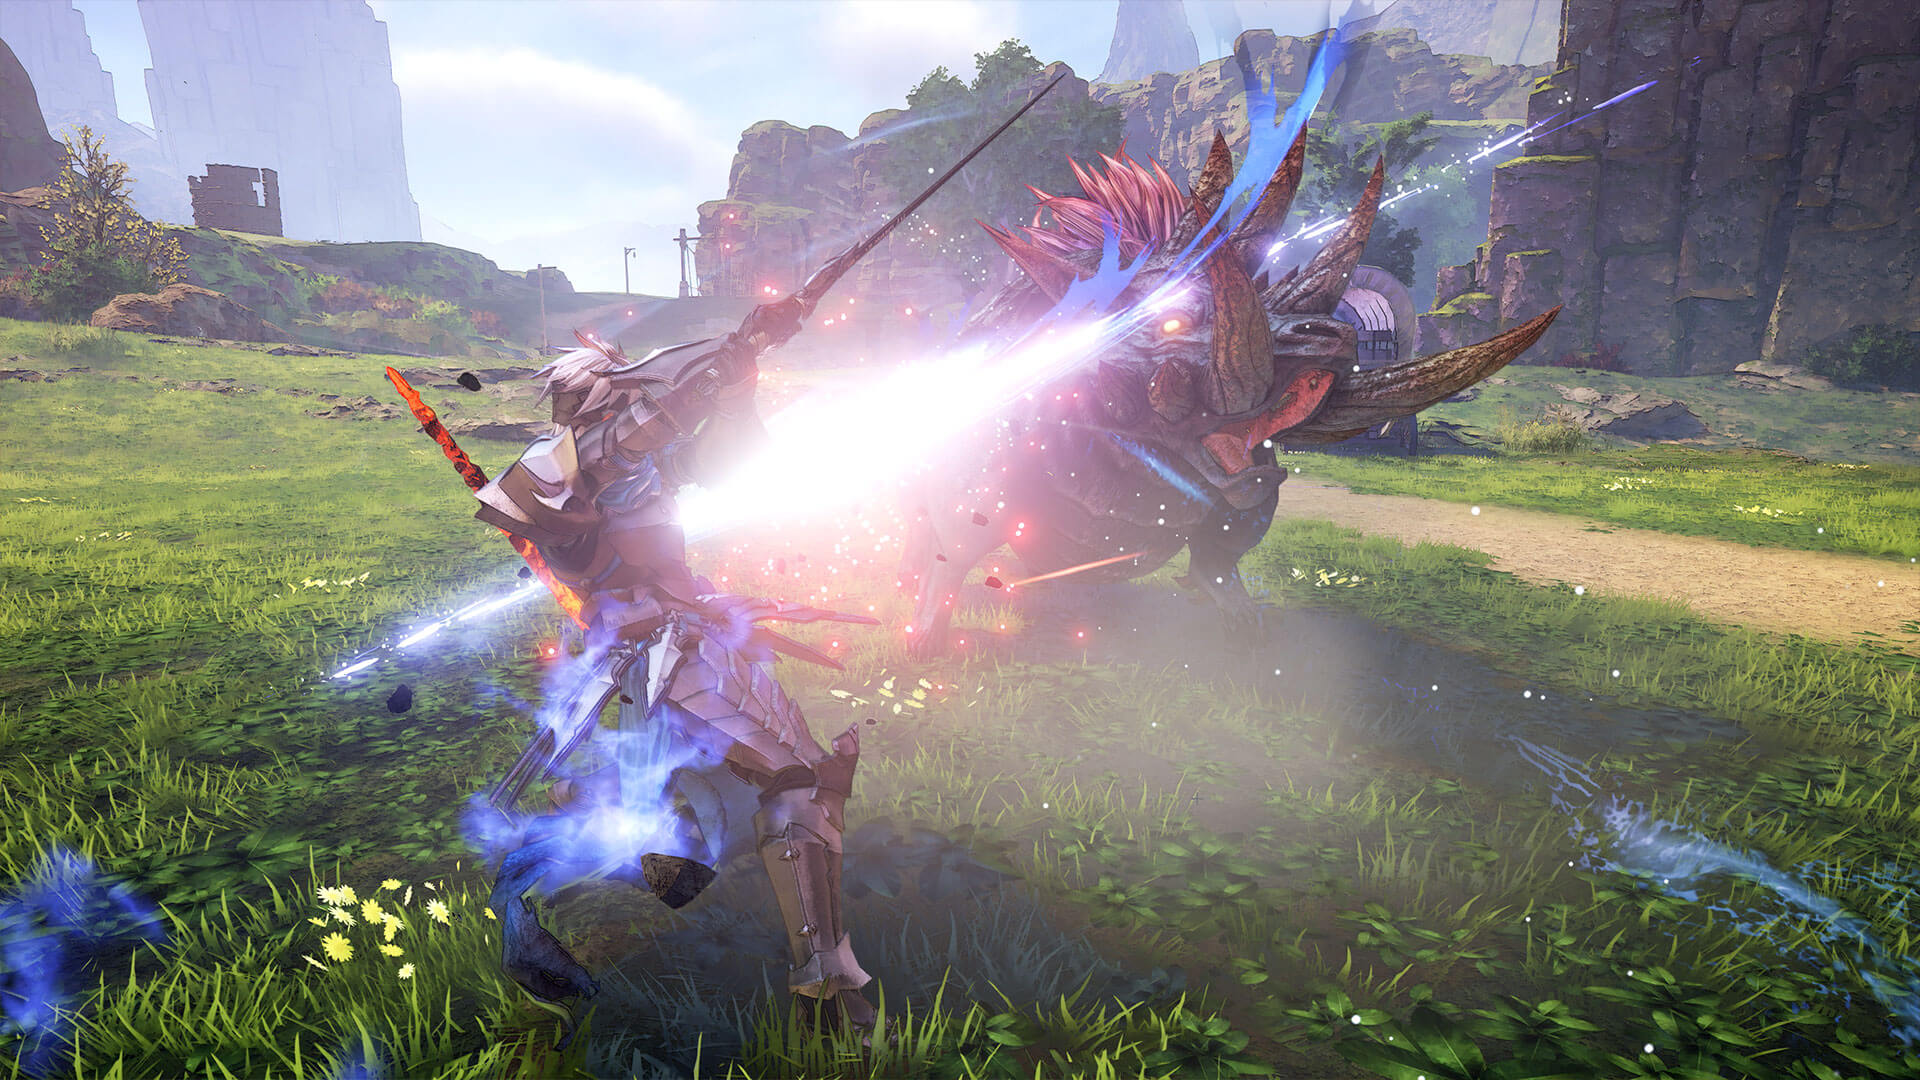 E3 2019: Tales of Arise Gameplay Details Have Leaked, Will